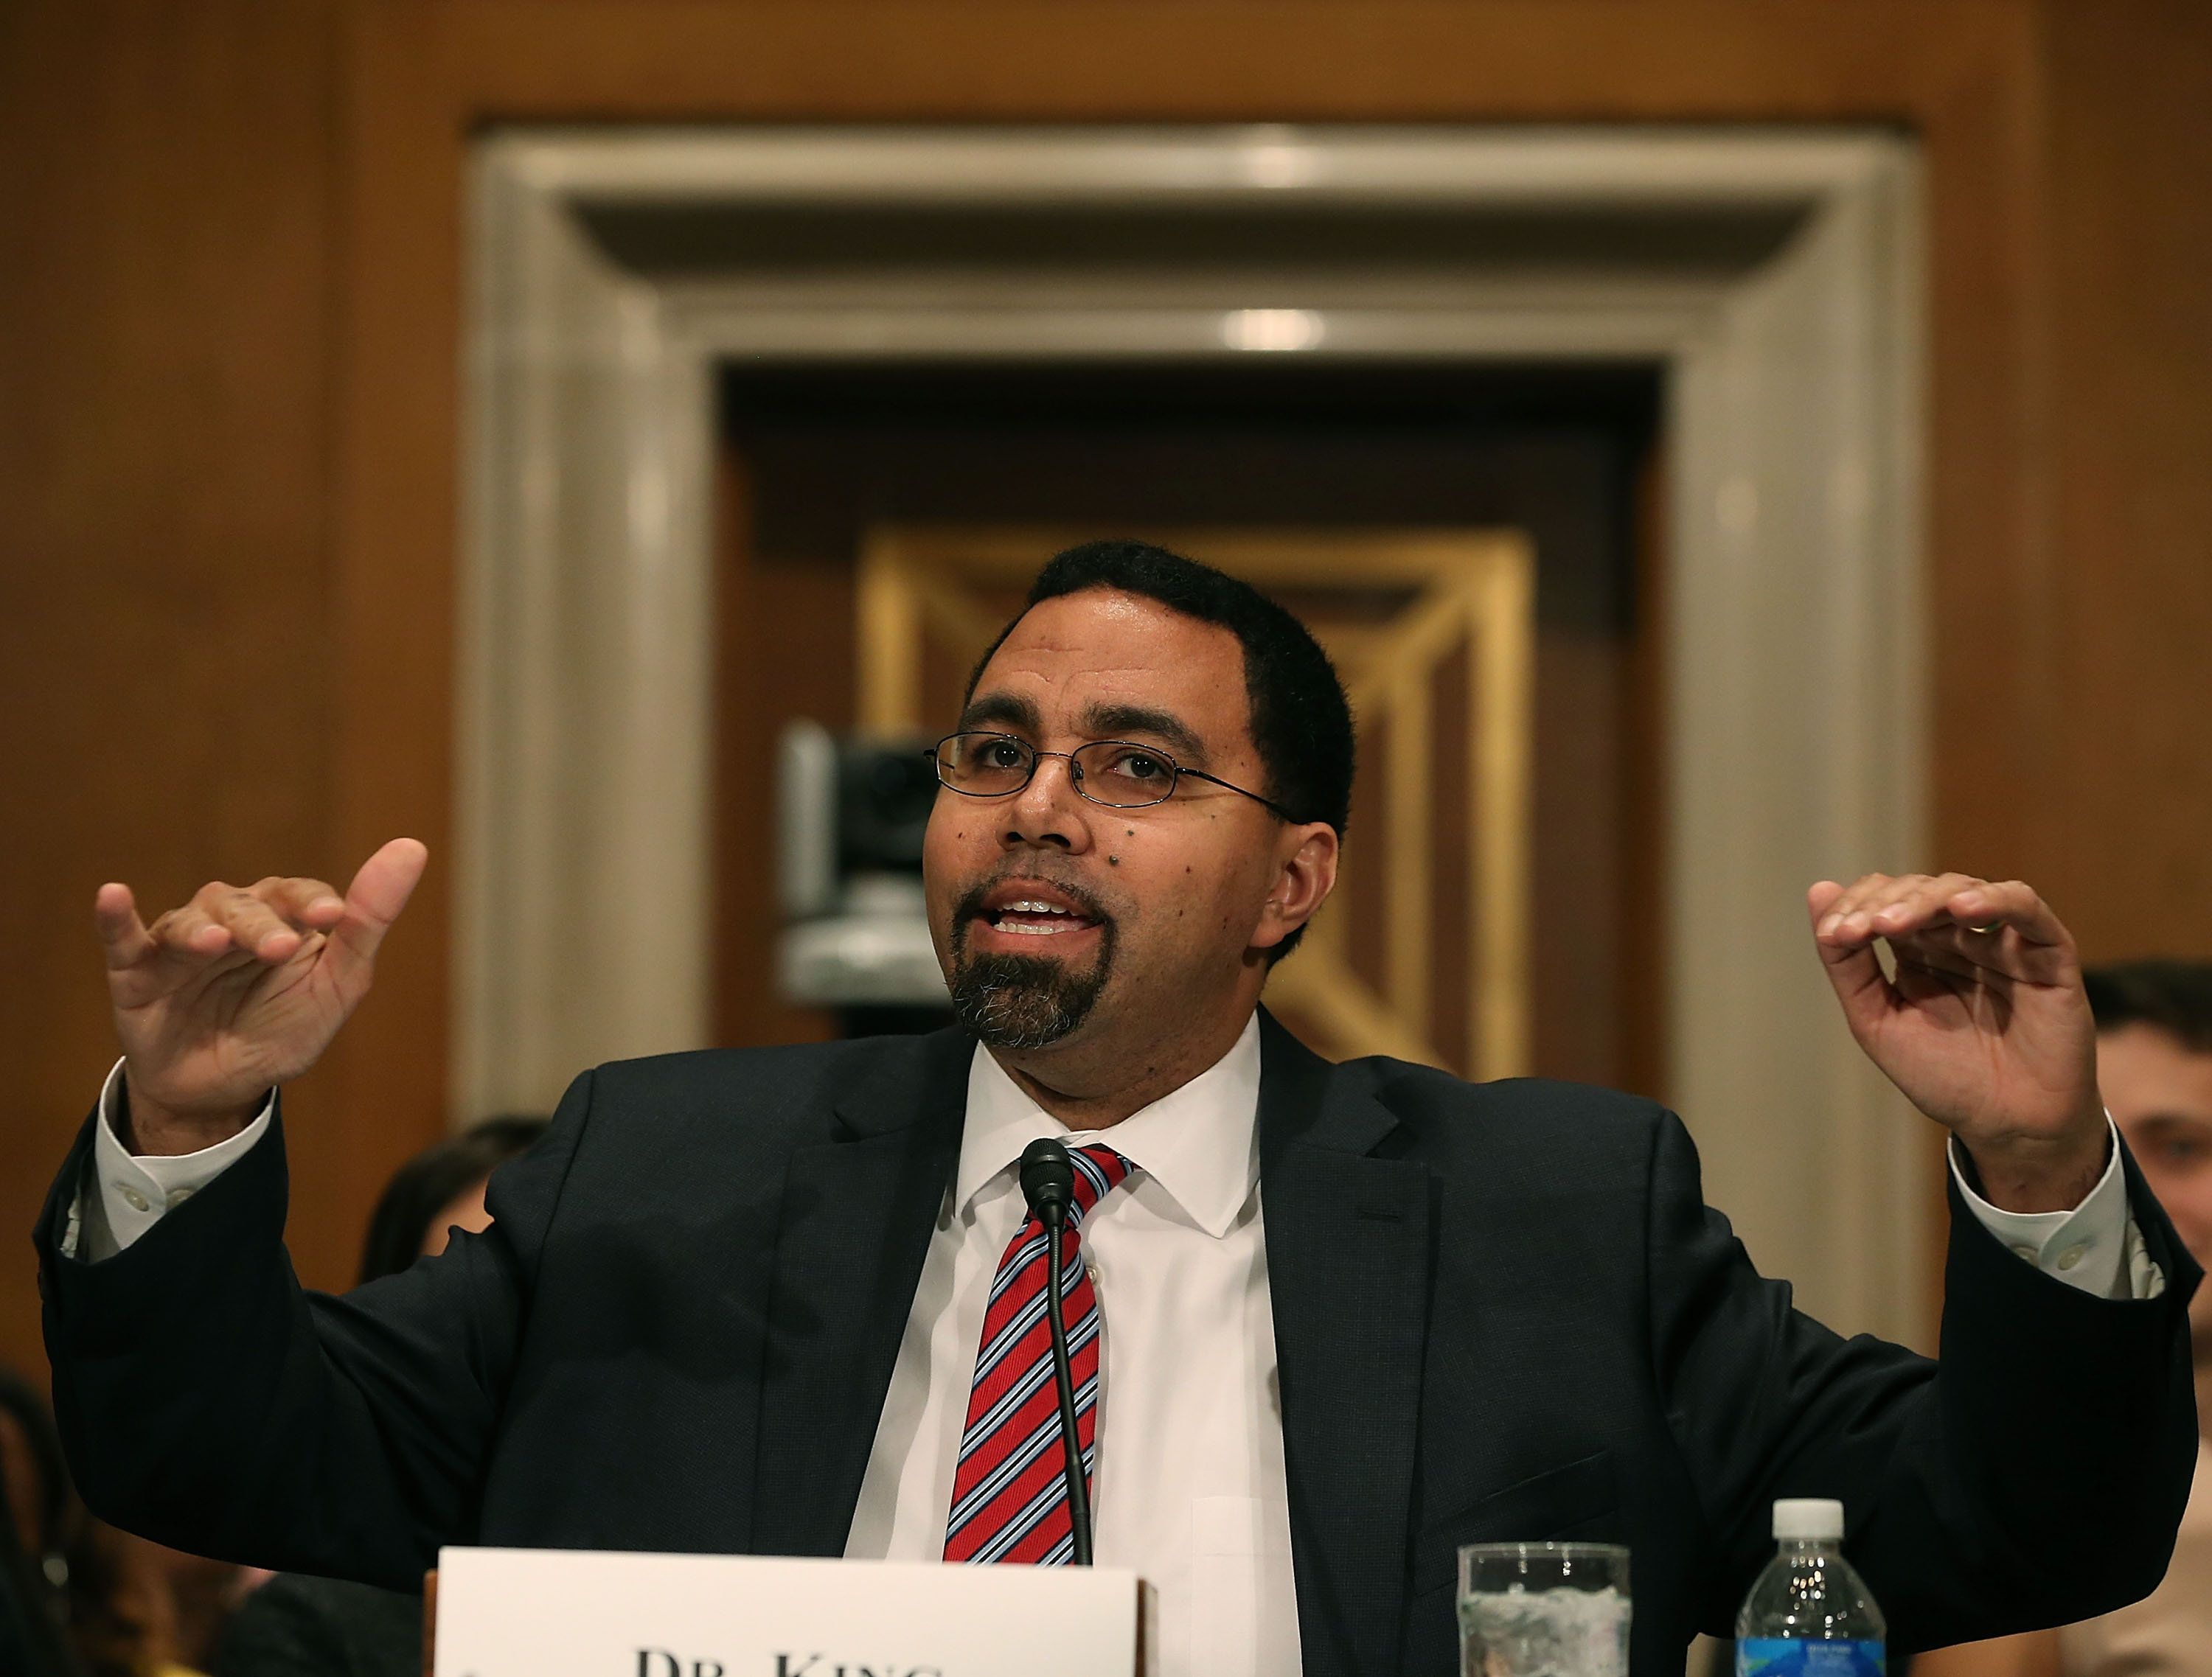 Dr. John King speaks during his Senate confirmation hearing to become Education secretary on Feb. 25.